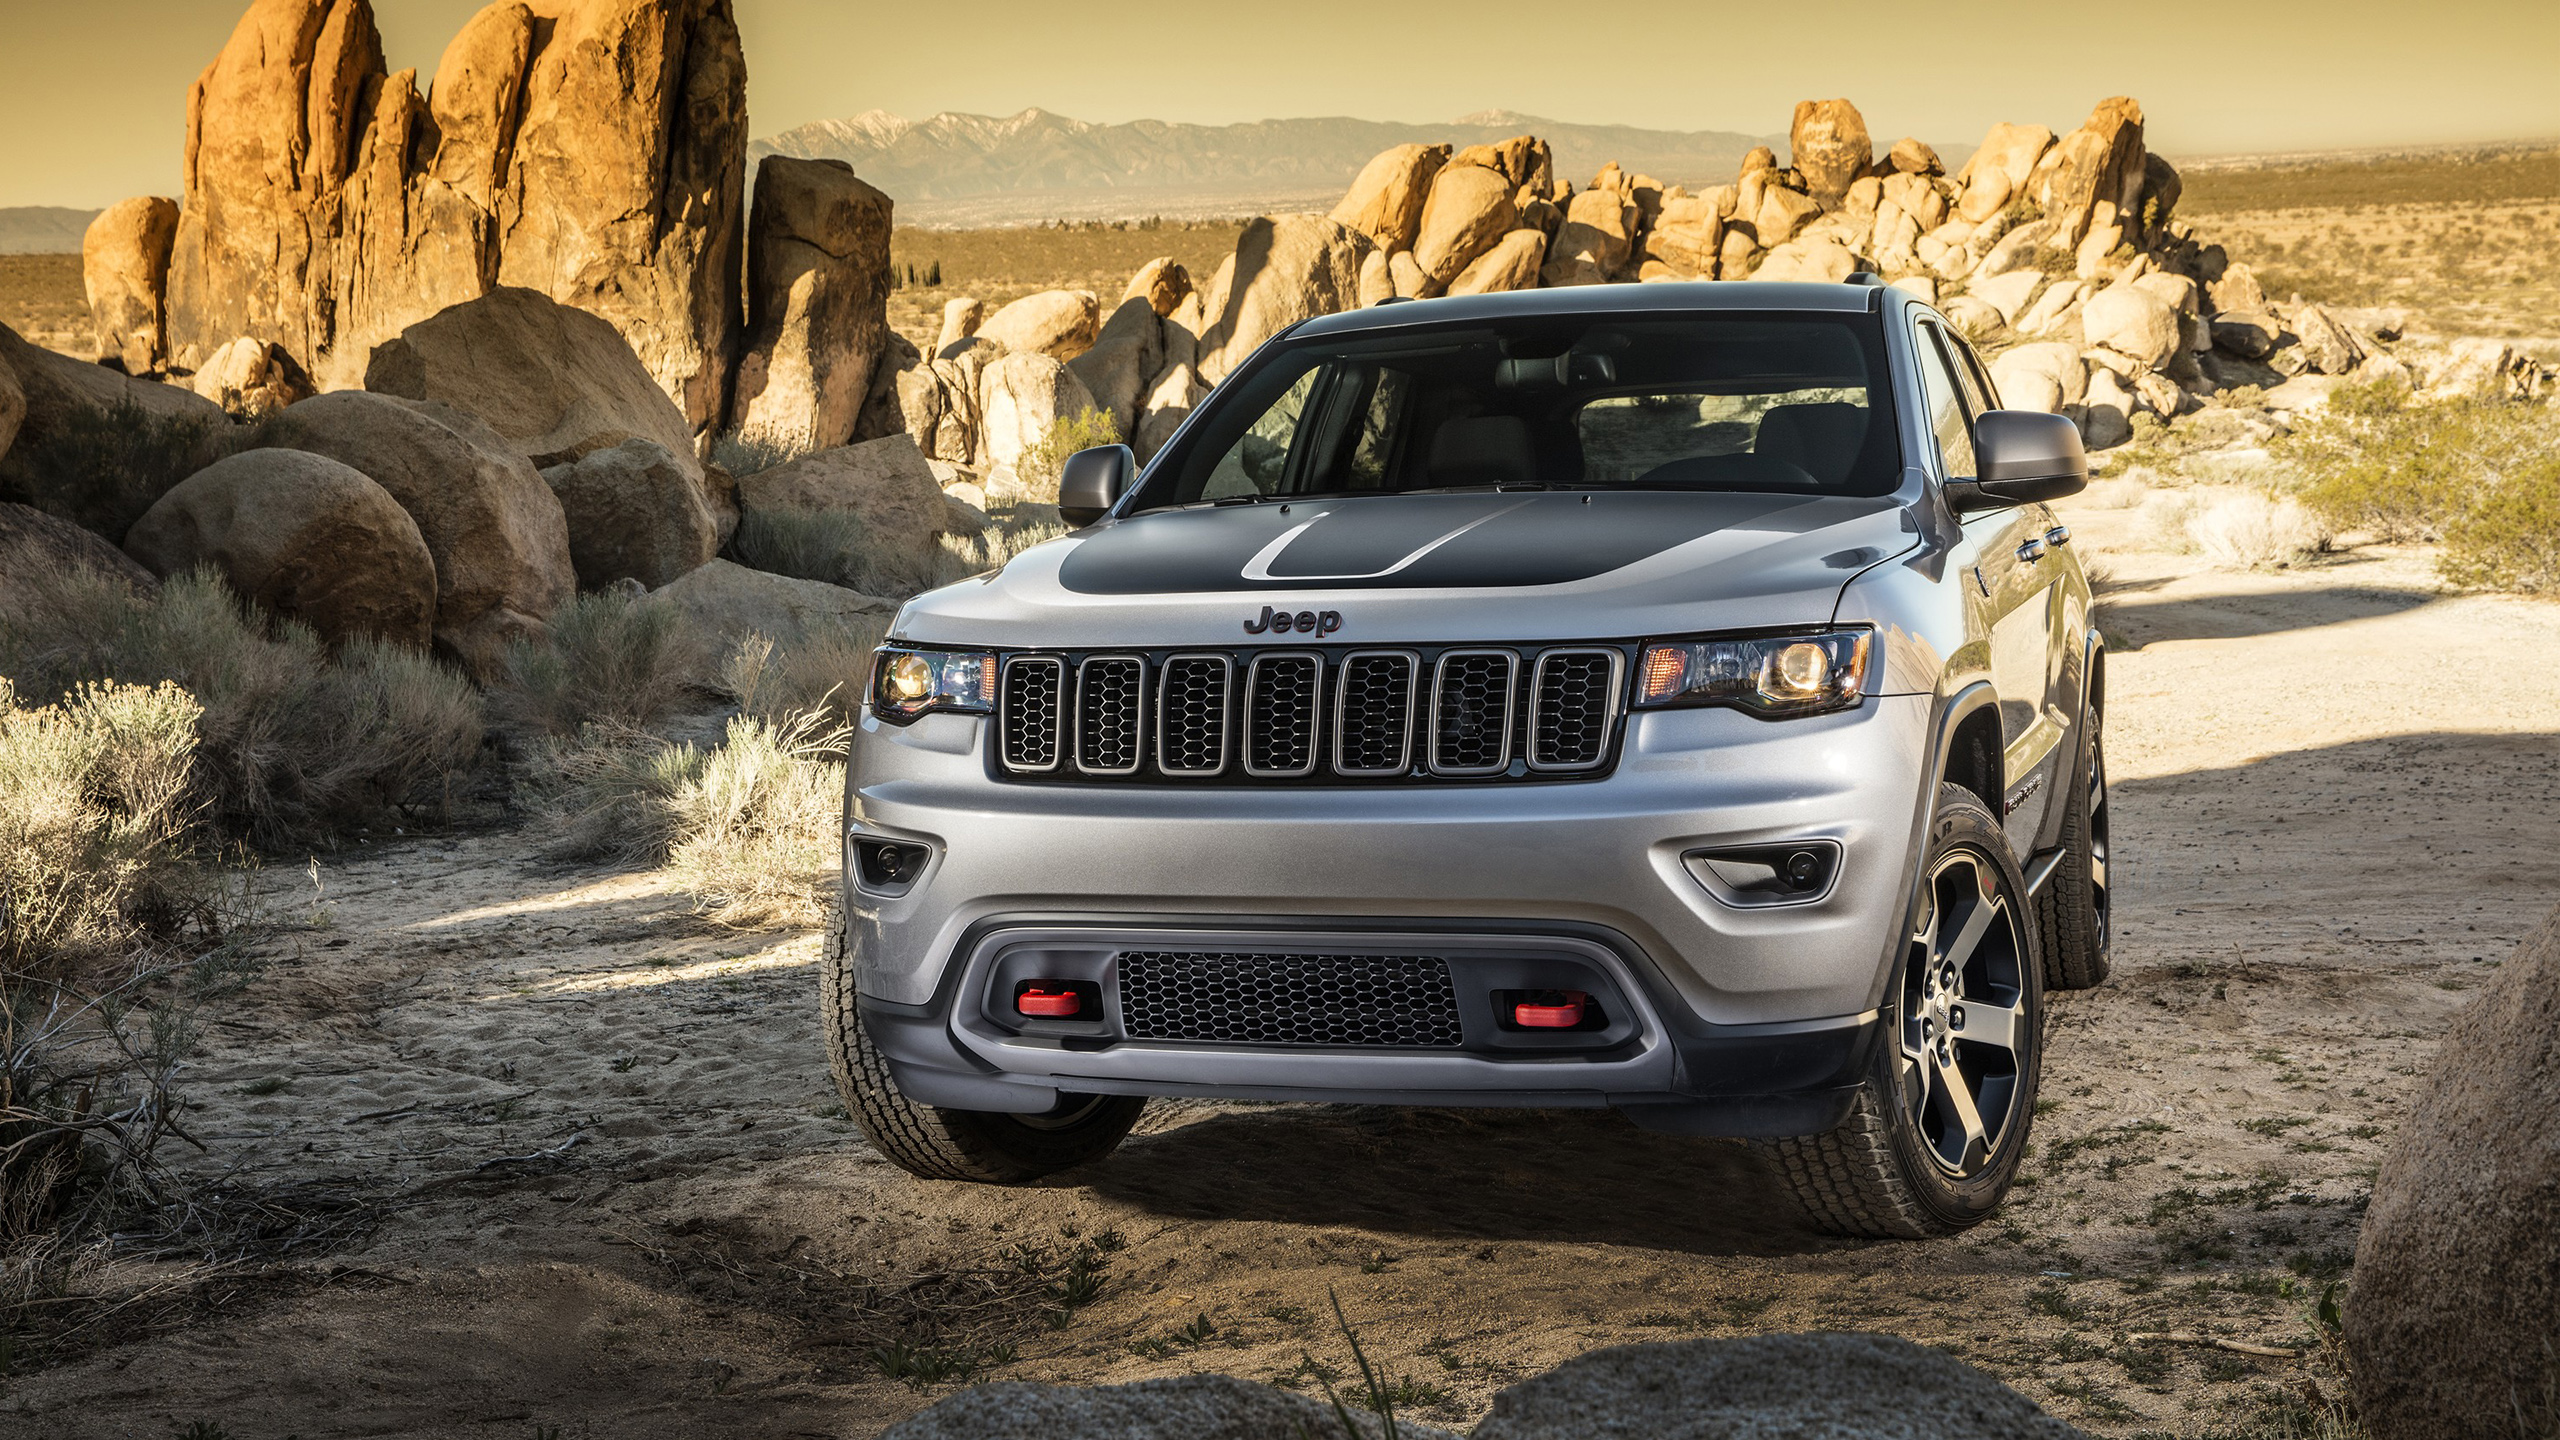 Jeep Grand Cherokee Wallpapers and Background Images   stmednet 2560x1440